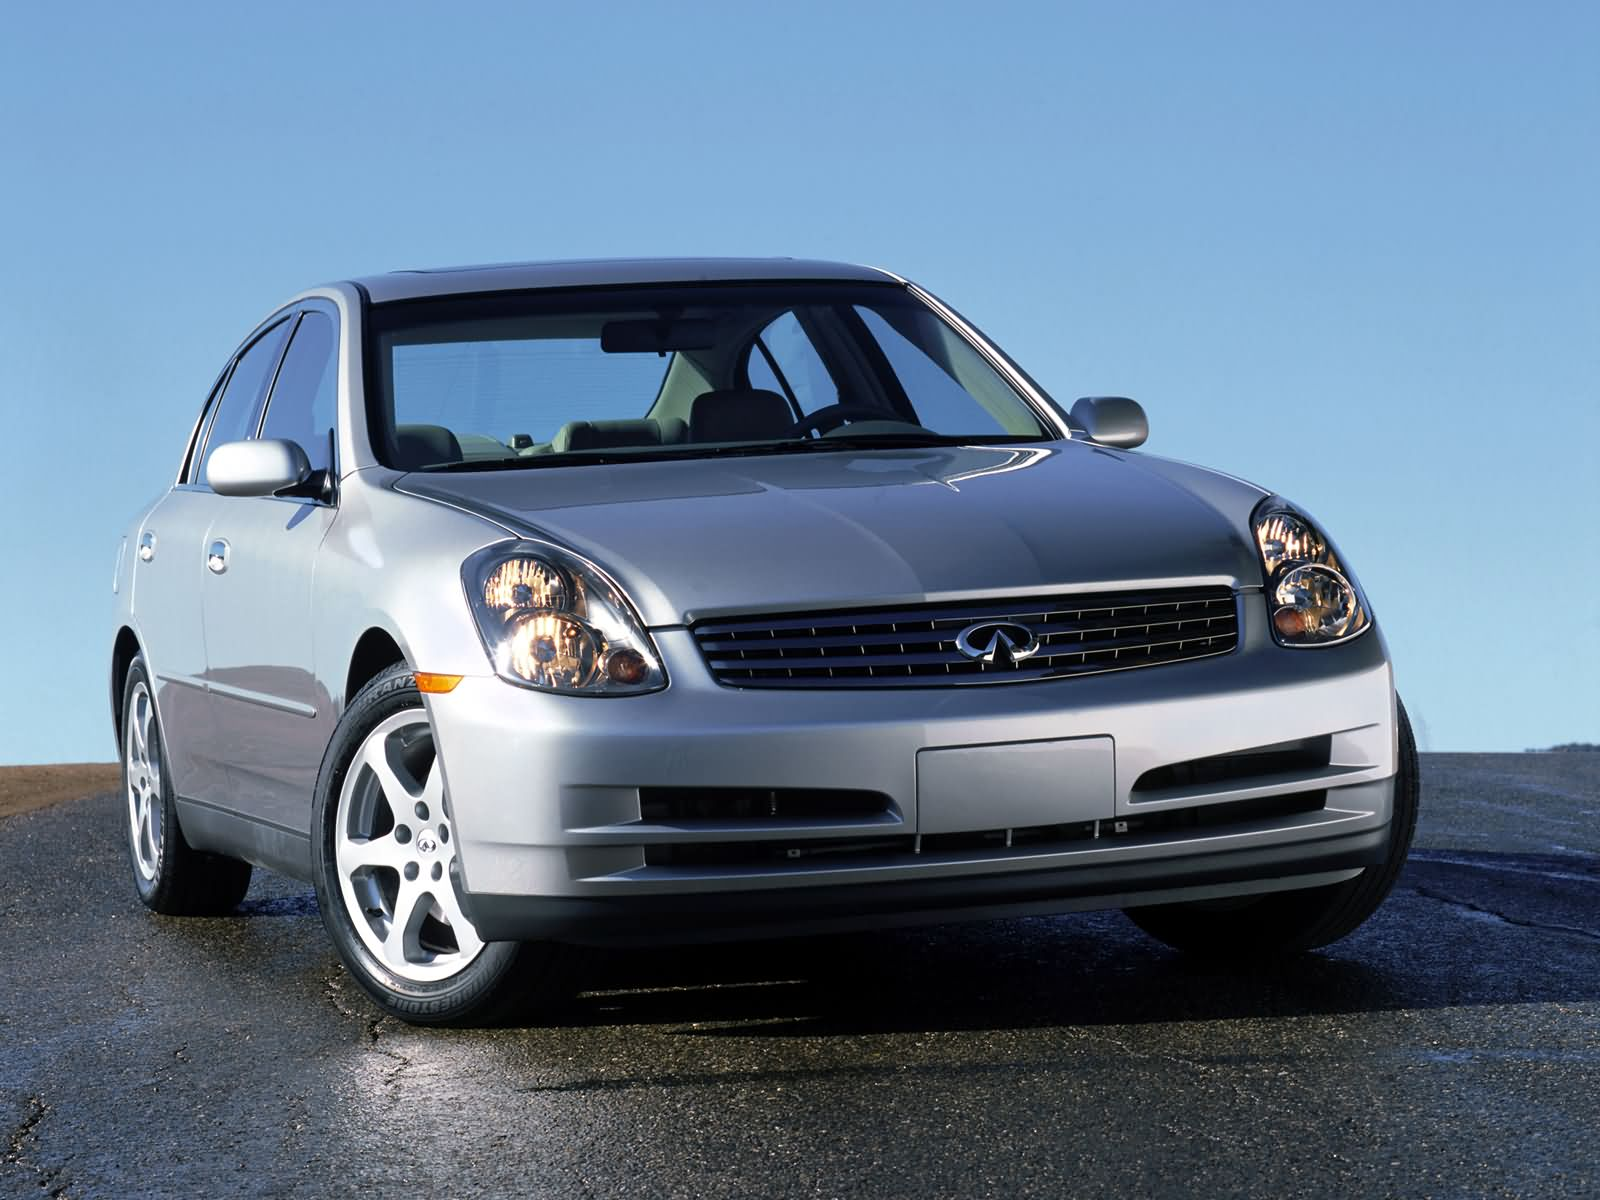 and infiniti g35 wallpaper today related wallpapers automobile 1600x1200